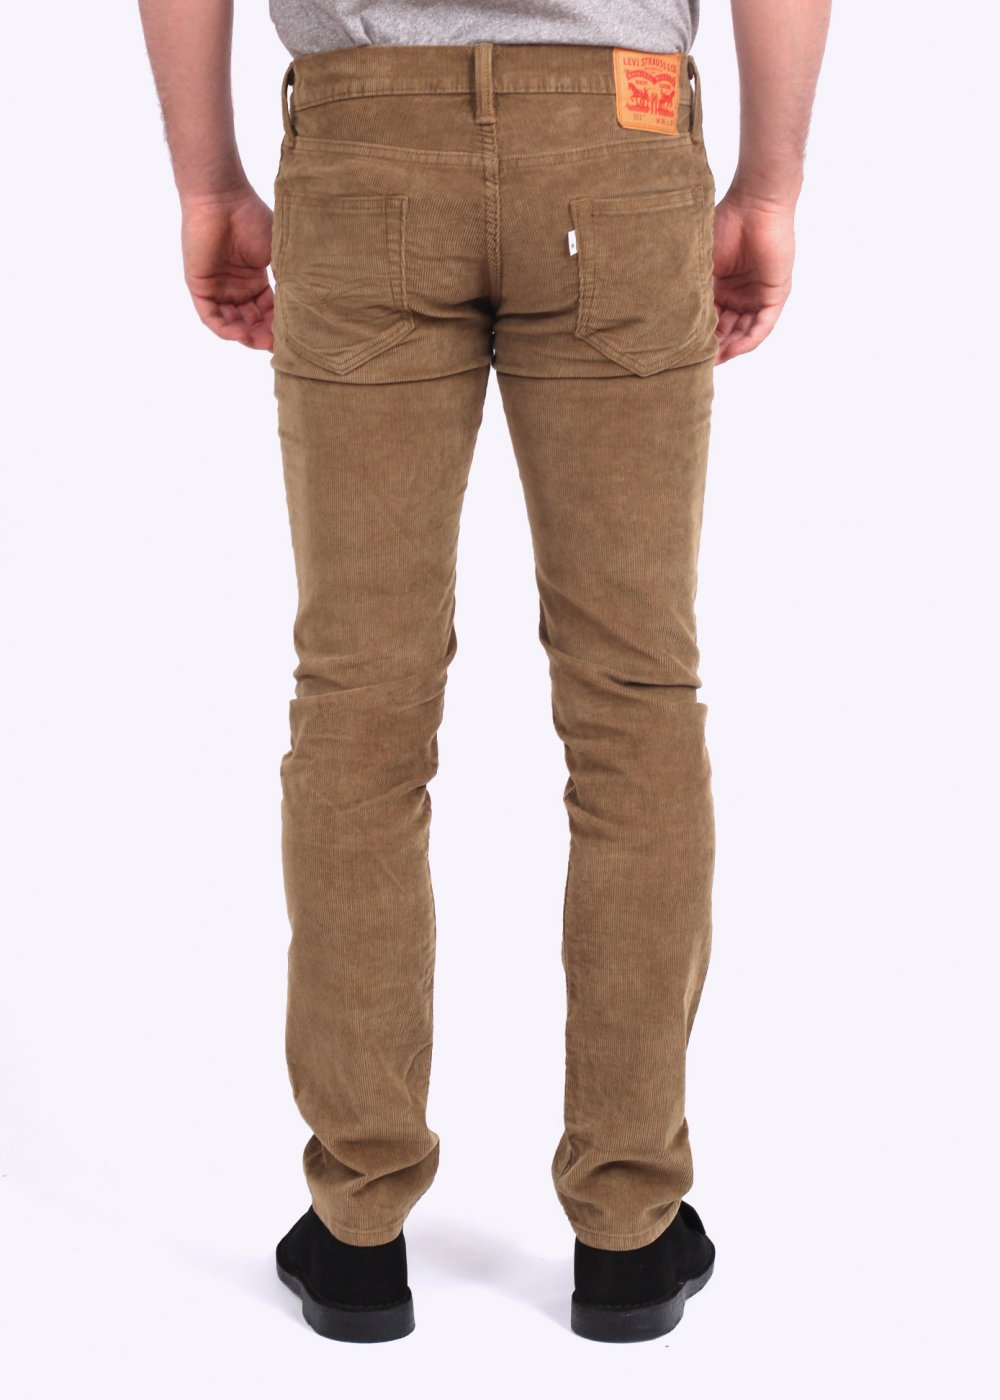 Shop Men's Pants at shopnew-5uel8qry.cf Find your fit & style among our tailored slims, relaxed straights in chinos, oxfords and cotton pants. Skip to Main Content. new. Shop New Arrivals Slim-fit pant in corduroy $ available in 7 colors. QUICK SHOP. Slim-fit pant in .